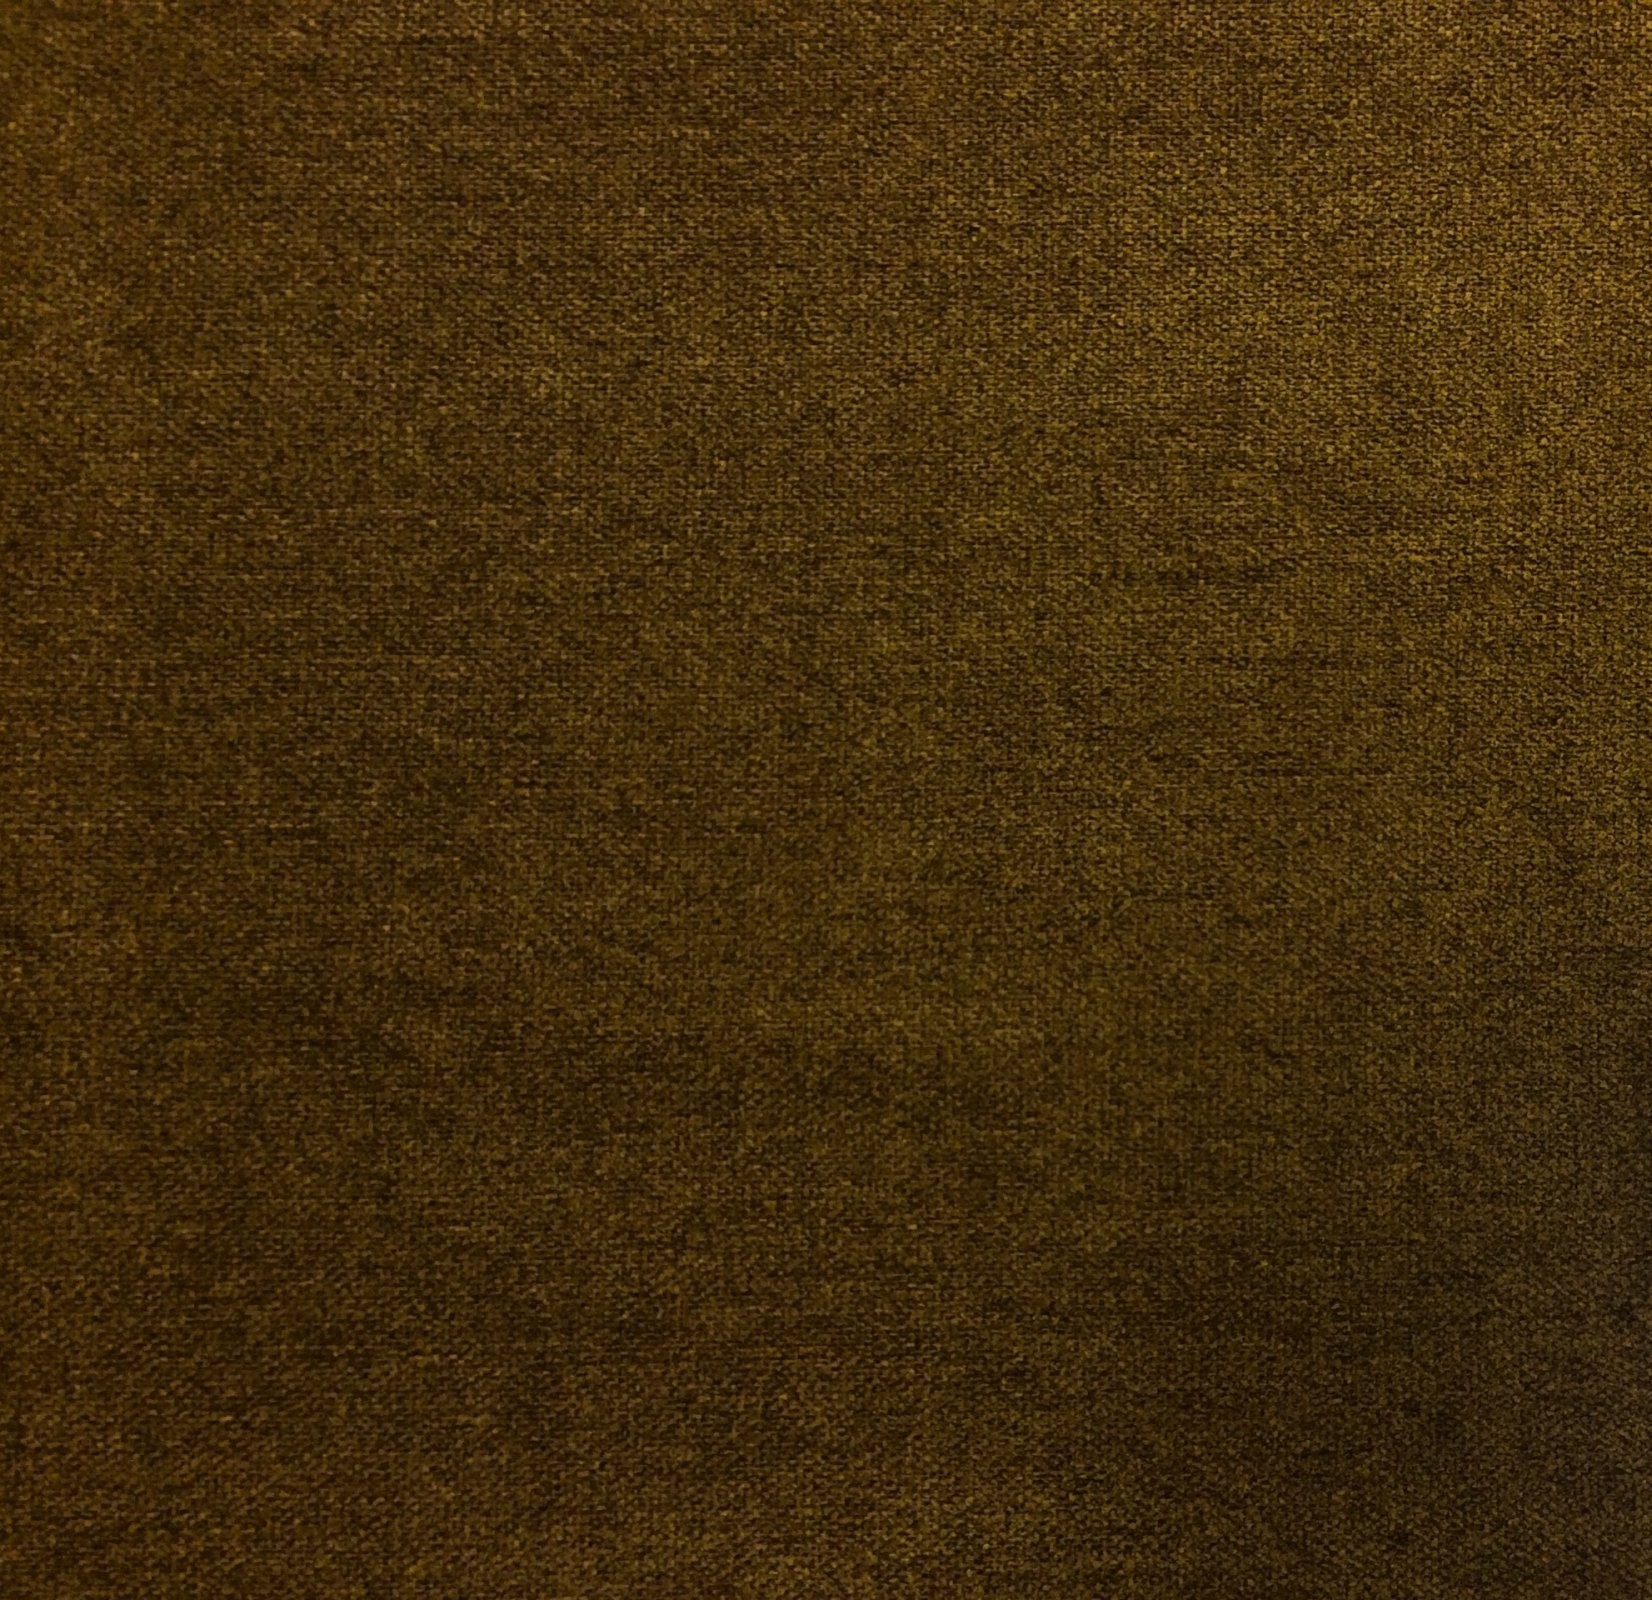 Olive Brown Heavy Upholstery Chenille Fabric LAT007